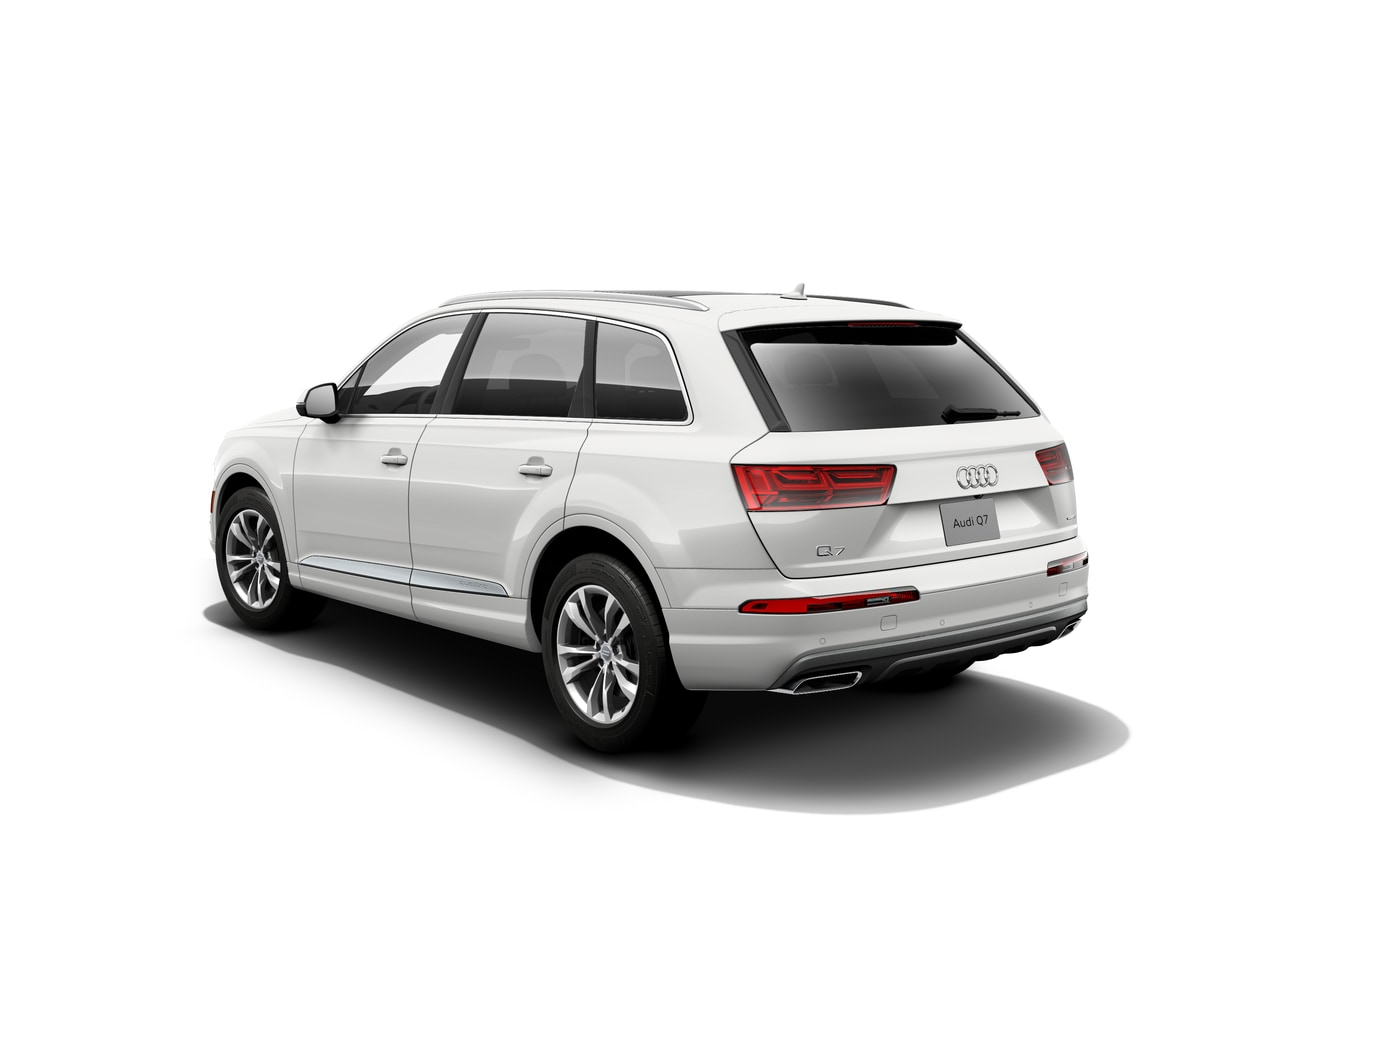 Garage Audi Lille New 2019 Audi Q7 For Sale In Houston Tx Vin Wa1ahaf73kd036357